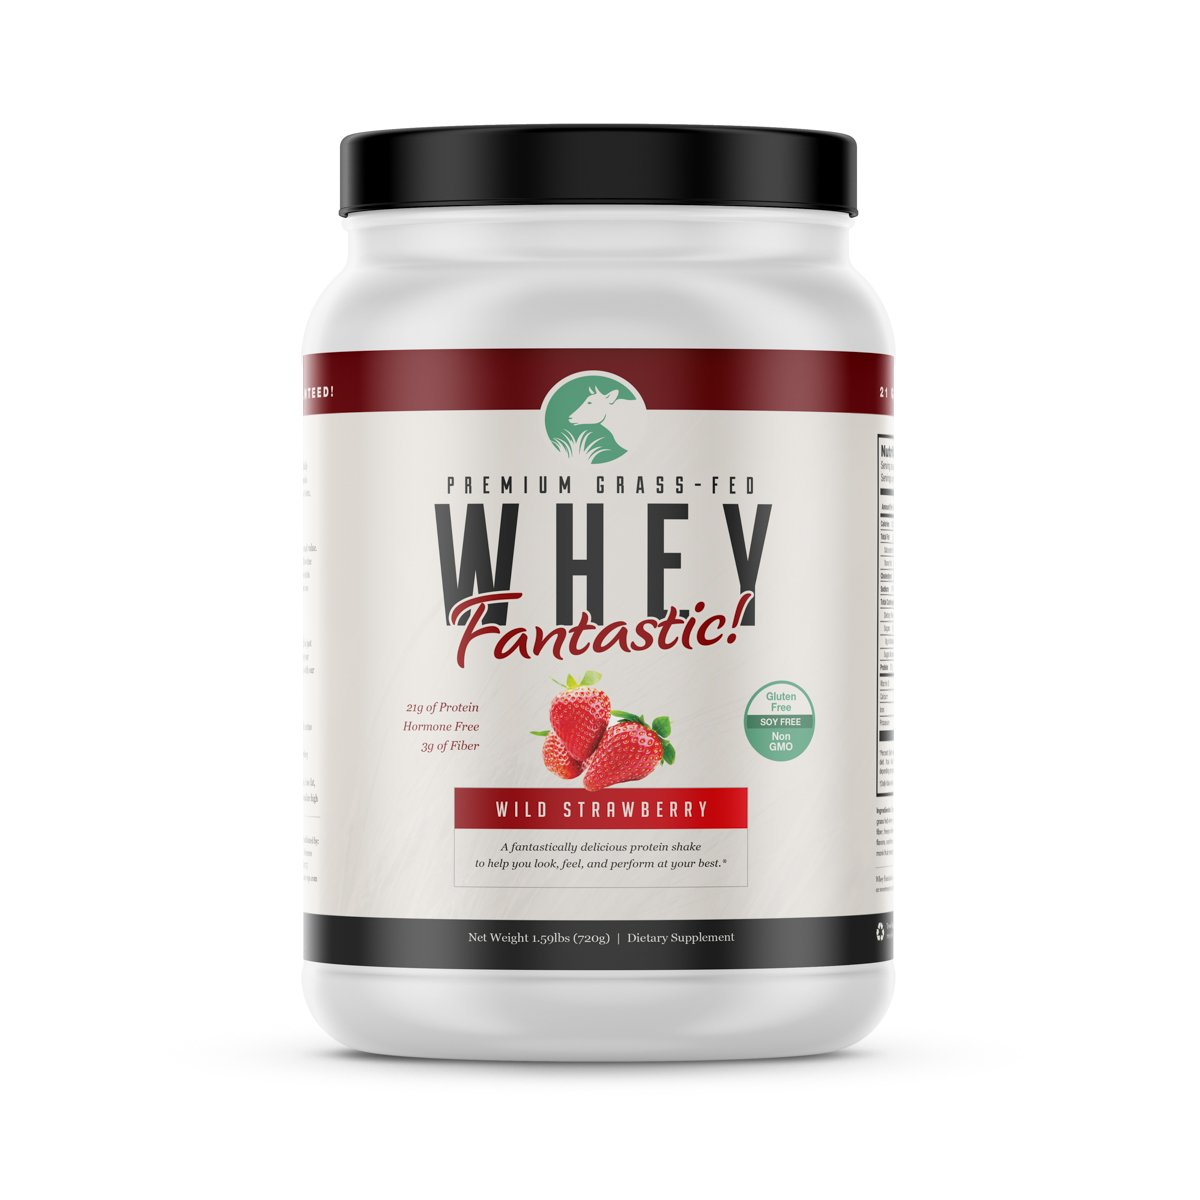 Grass Fed Strawberry Whey Fantastic – All Natural Whey Protein Blend from Isolate Concentrate Perfect for Building Lean Muscle – Non-denatured, Non-GMO, Gluten Soy Free – 1.6lb – 20 Servings